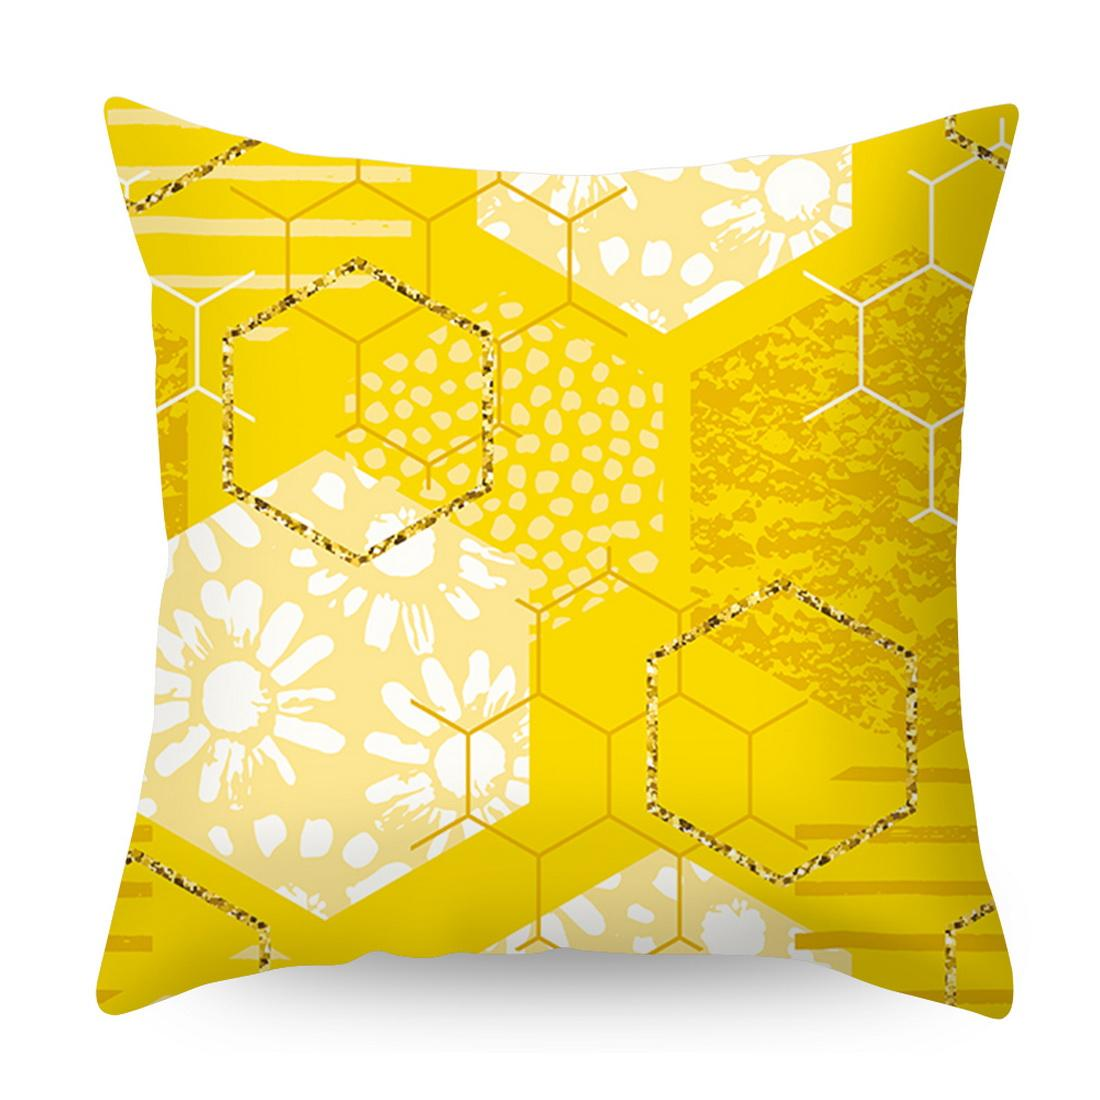 Decorative Pillow Cushion Covers Pillowcase Cushions for Sofa Polyester Pillowcover cuscini decoratin